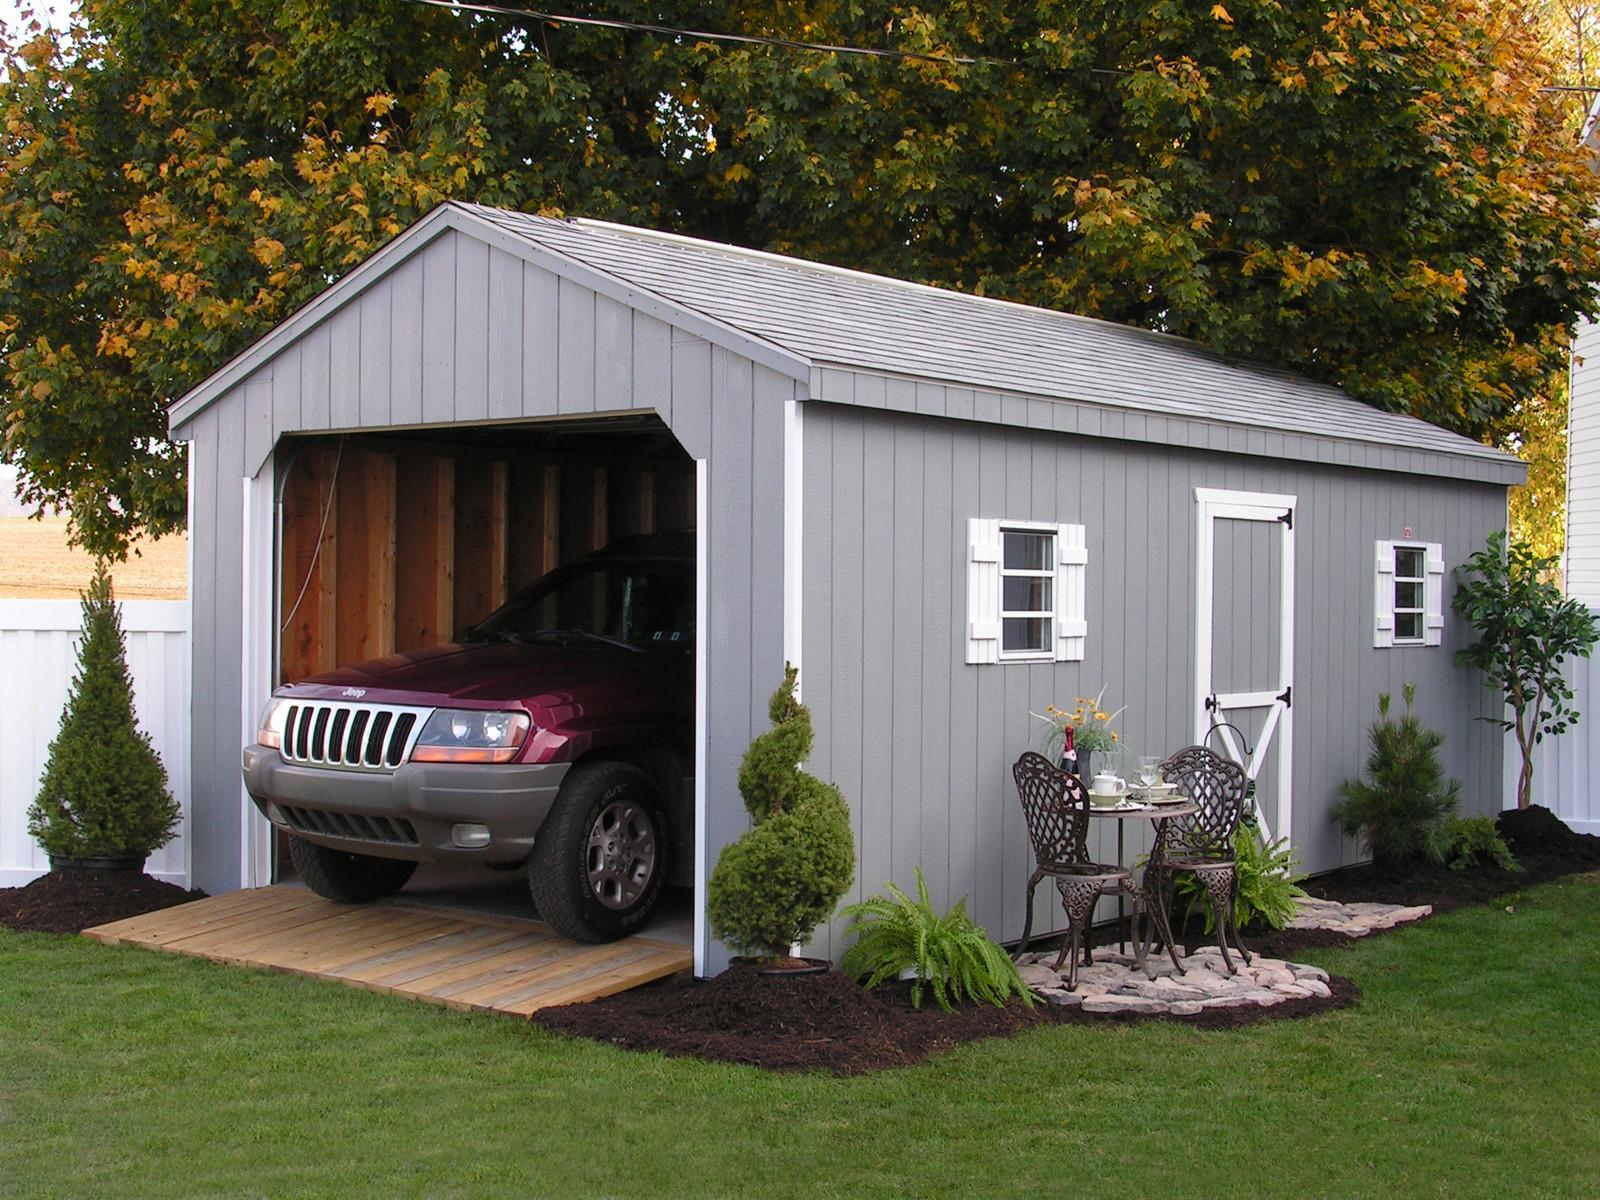 Best ideas about DIY Garage Kit . Save or Pin Prefab Garage Kits Sheds Unlimited of Lancaster Now.